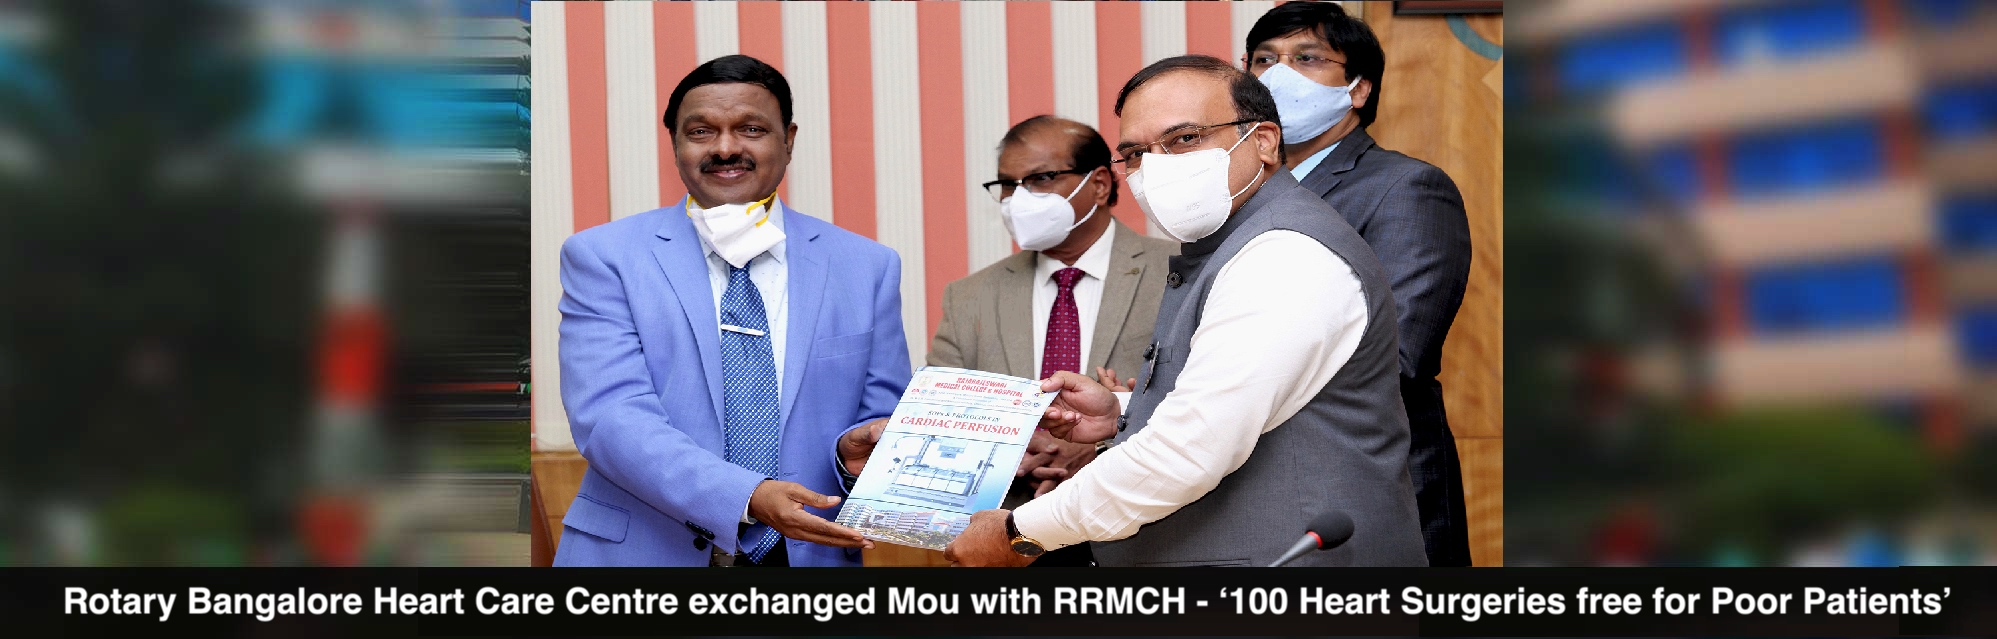 Rotary MOU with RRMCH